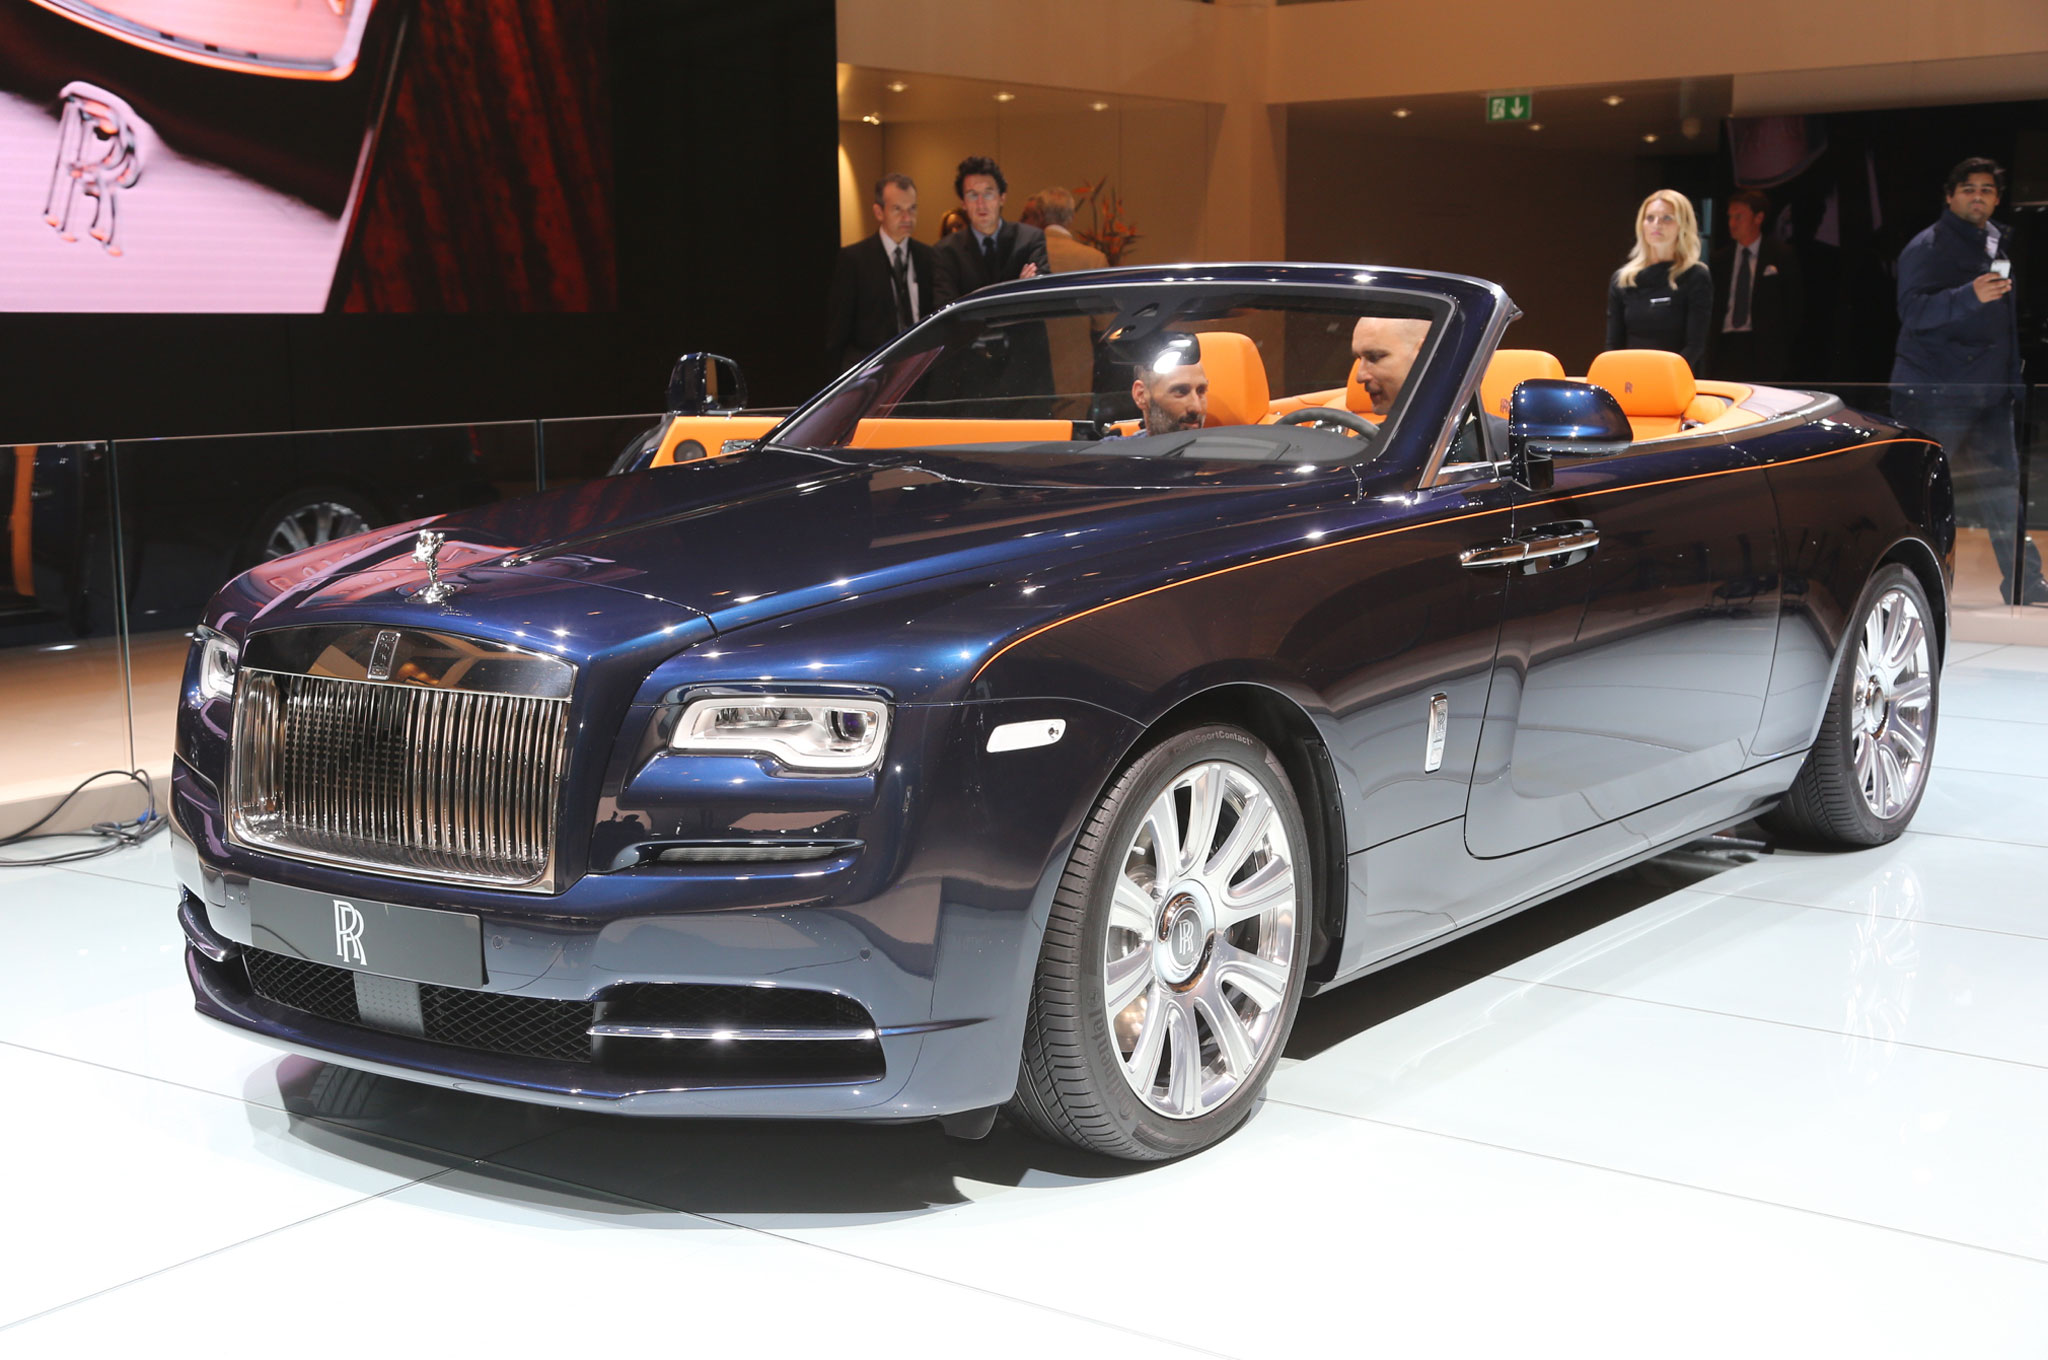 2017 rolls royce dawn brings open top ultra luxury to frankfurt. Black Bedroom Furniture Sets. Home Design Ideas